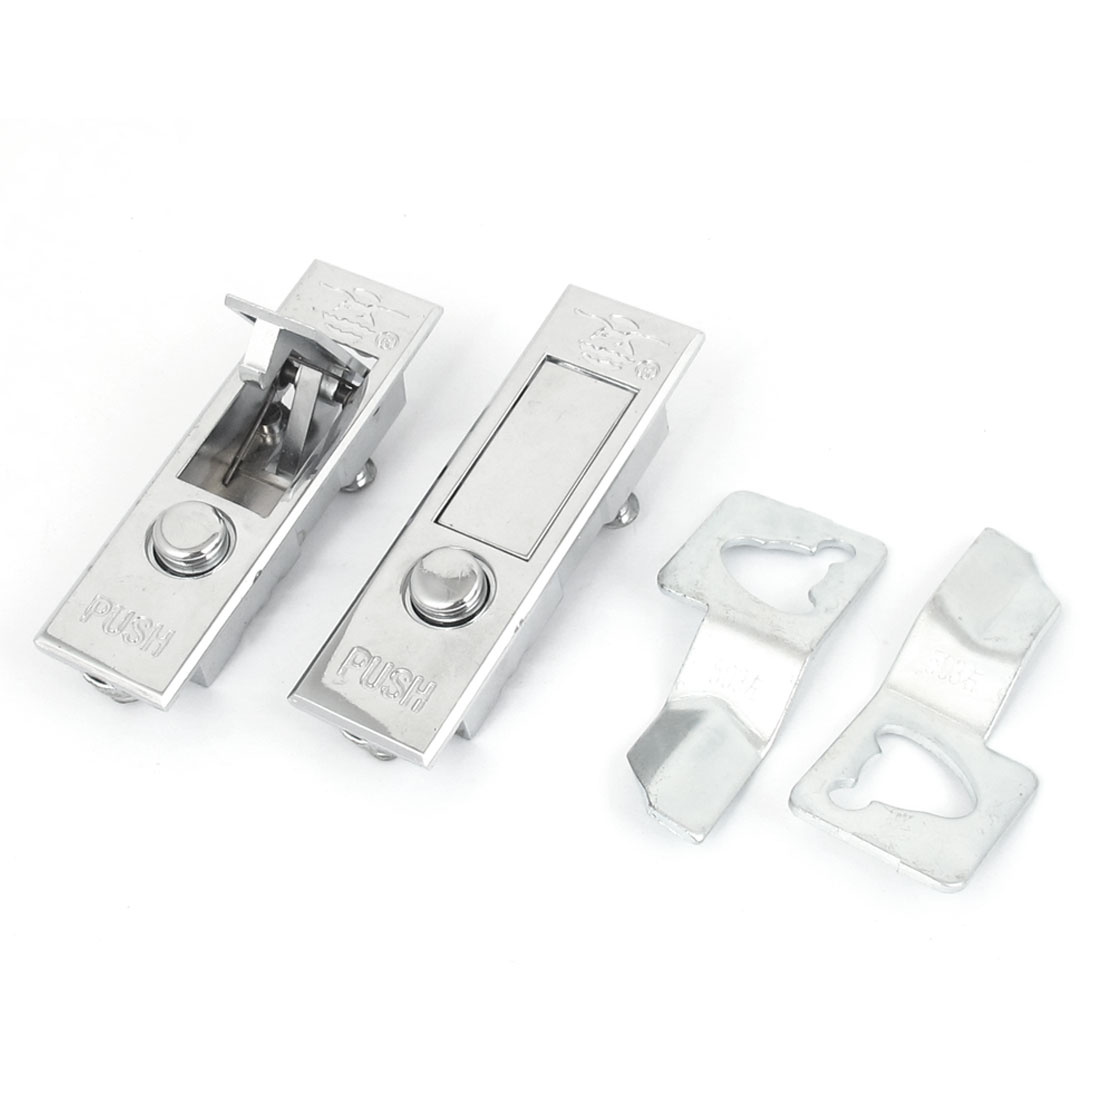 Electric Closet Cabinet Metal Push Button Pop Up Safety Plane Lock Silver Tone 2pcs